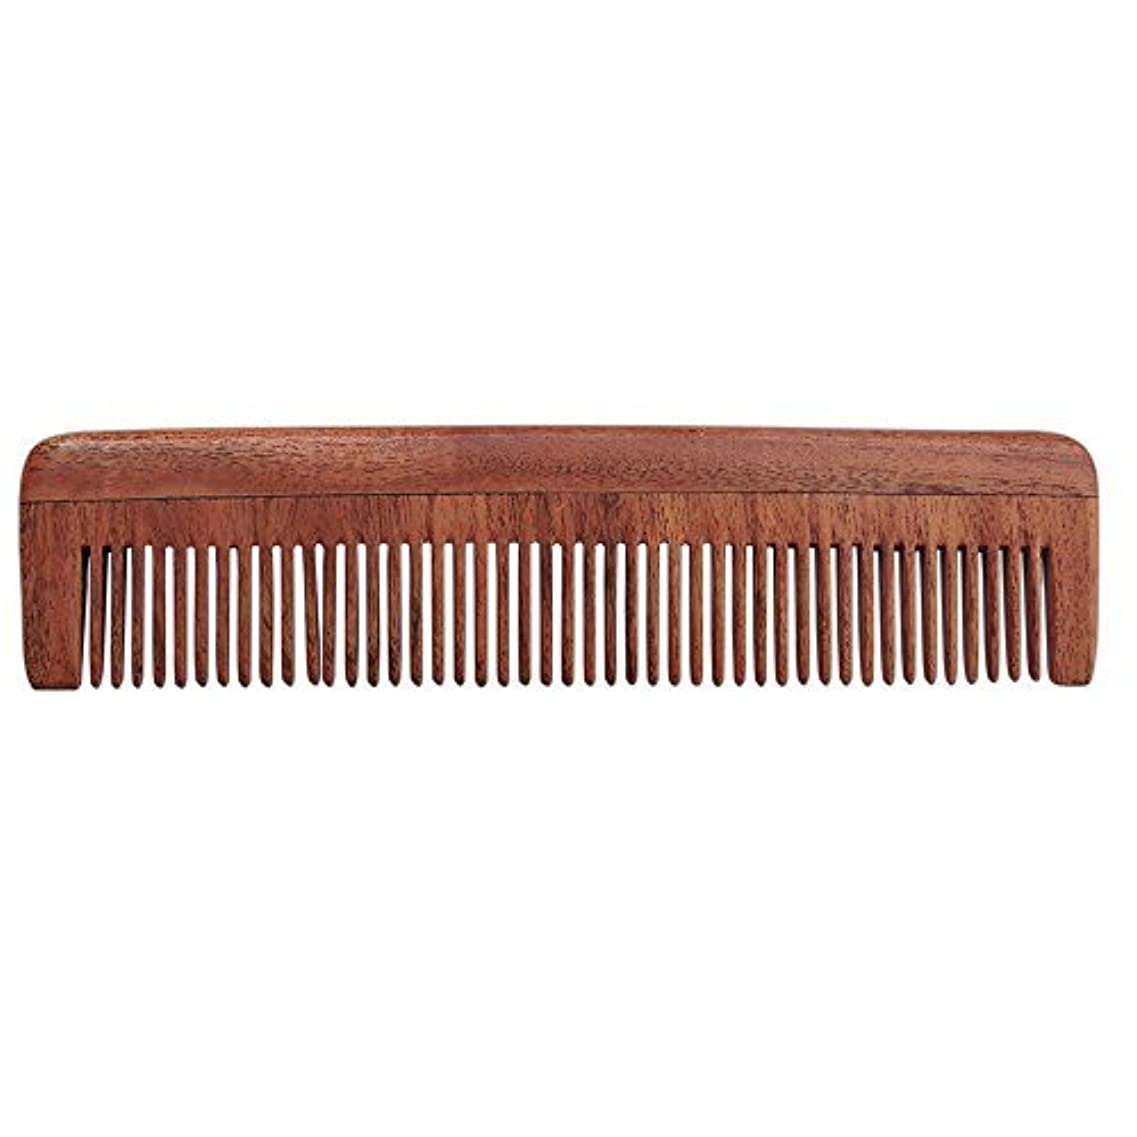 HealthGoodsIn - Pure Neem Wood Fine Tooth Comb for Fine Hair | Fine Tooth Neem Comb | Organic and Natural for...